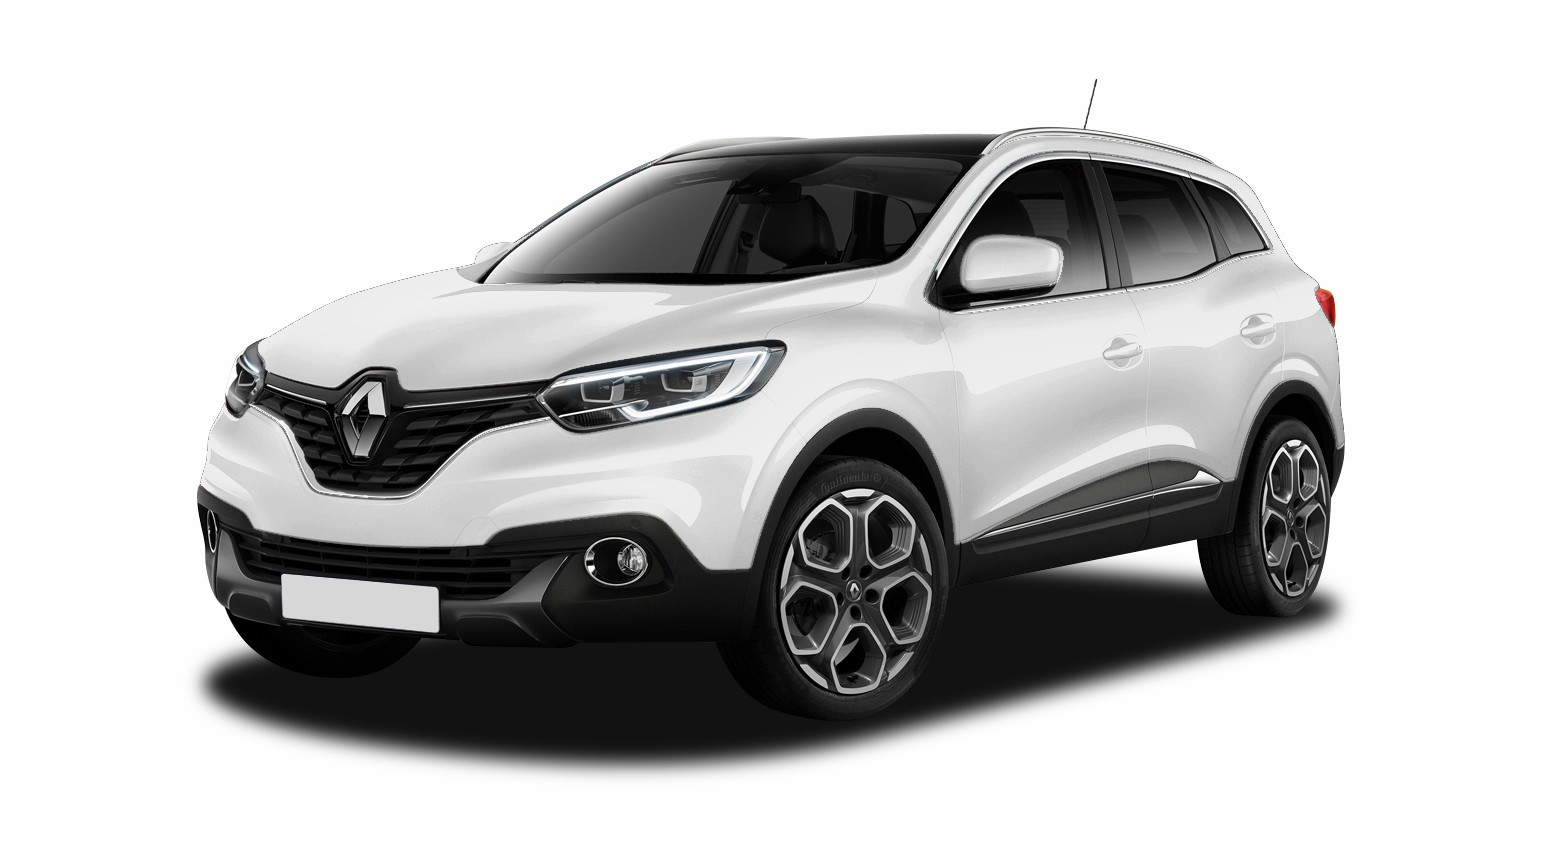 renault kadjar 4x2 et suv 5 portes essence 1 2 tce. Black Bedroom Furniture Sets. Home Design Ideas